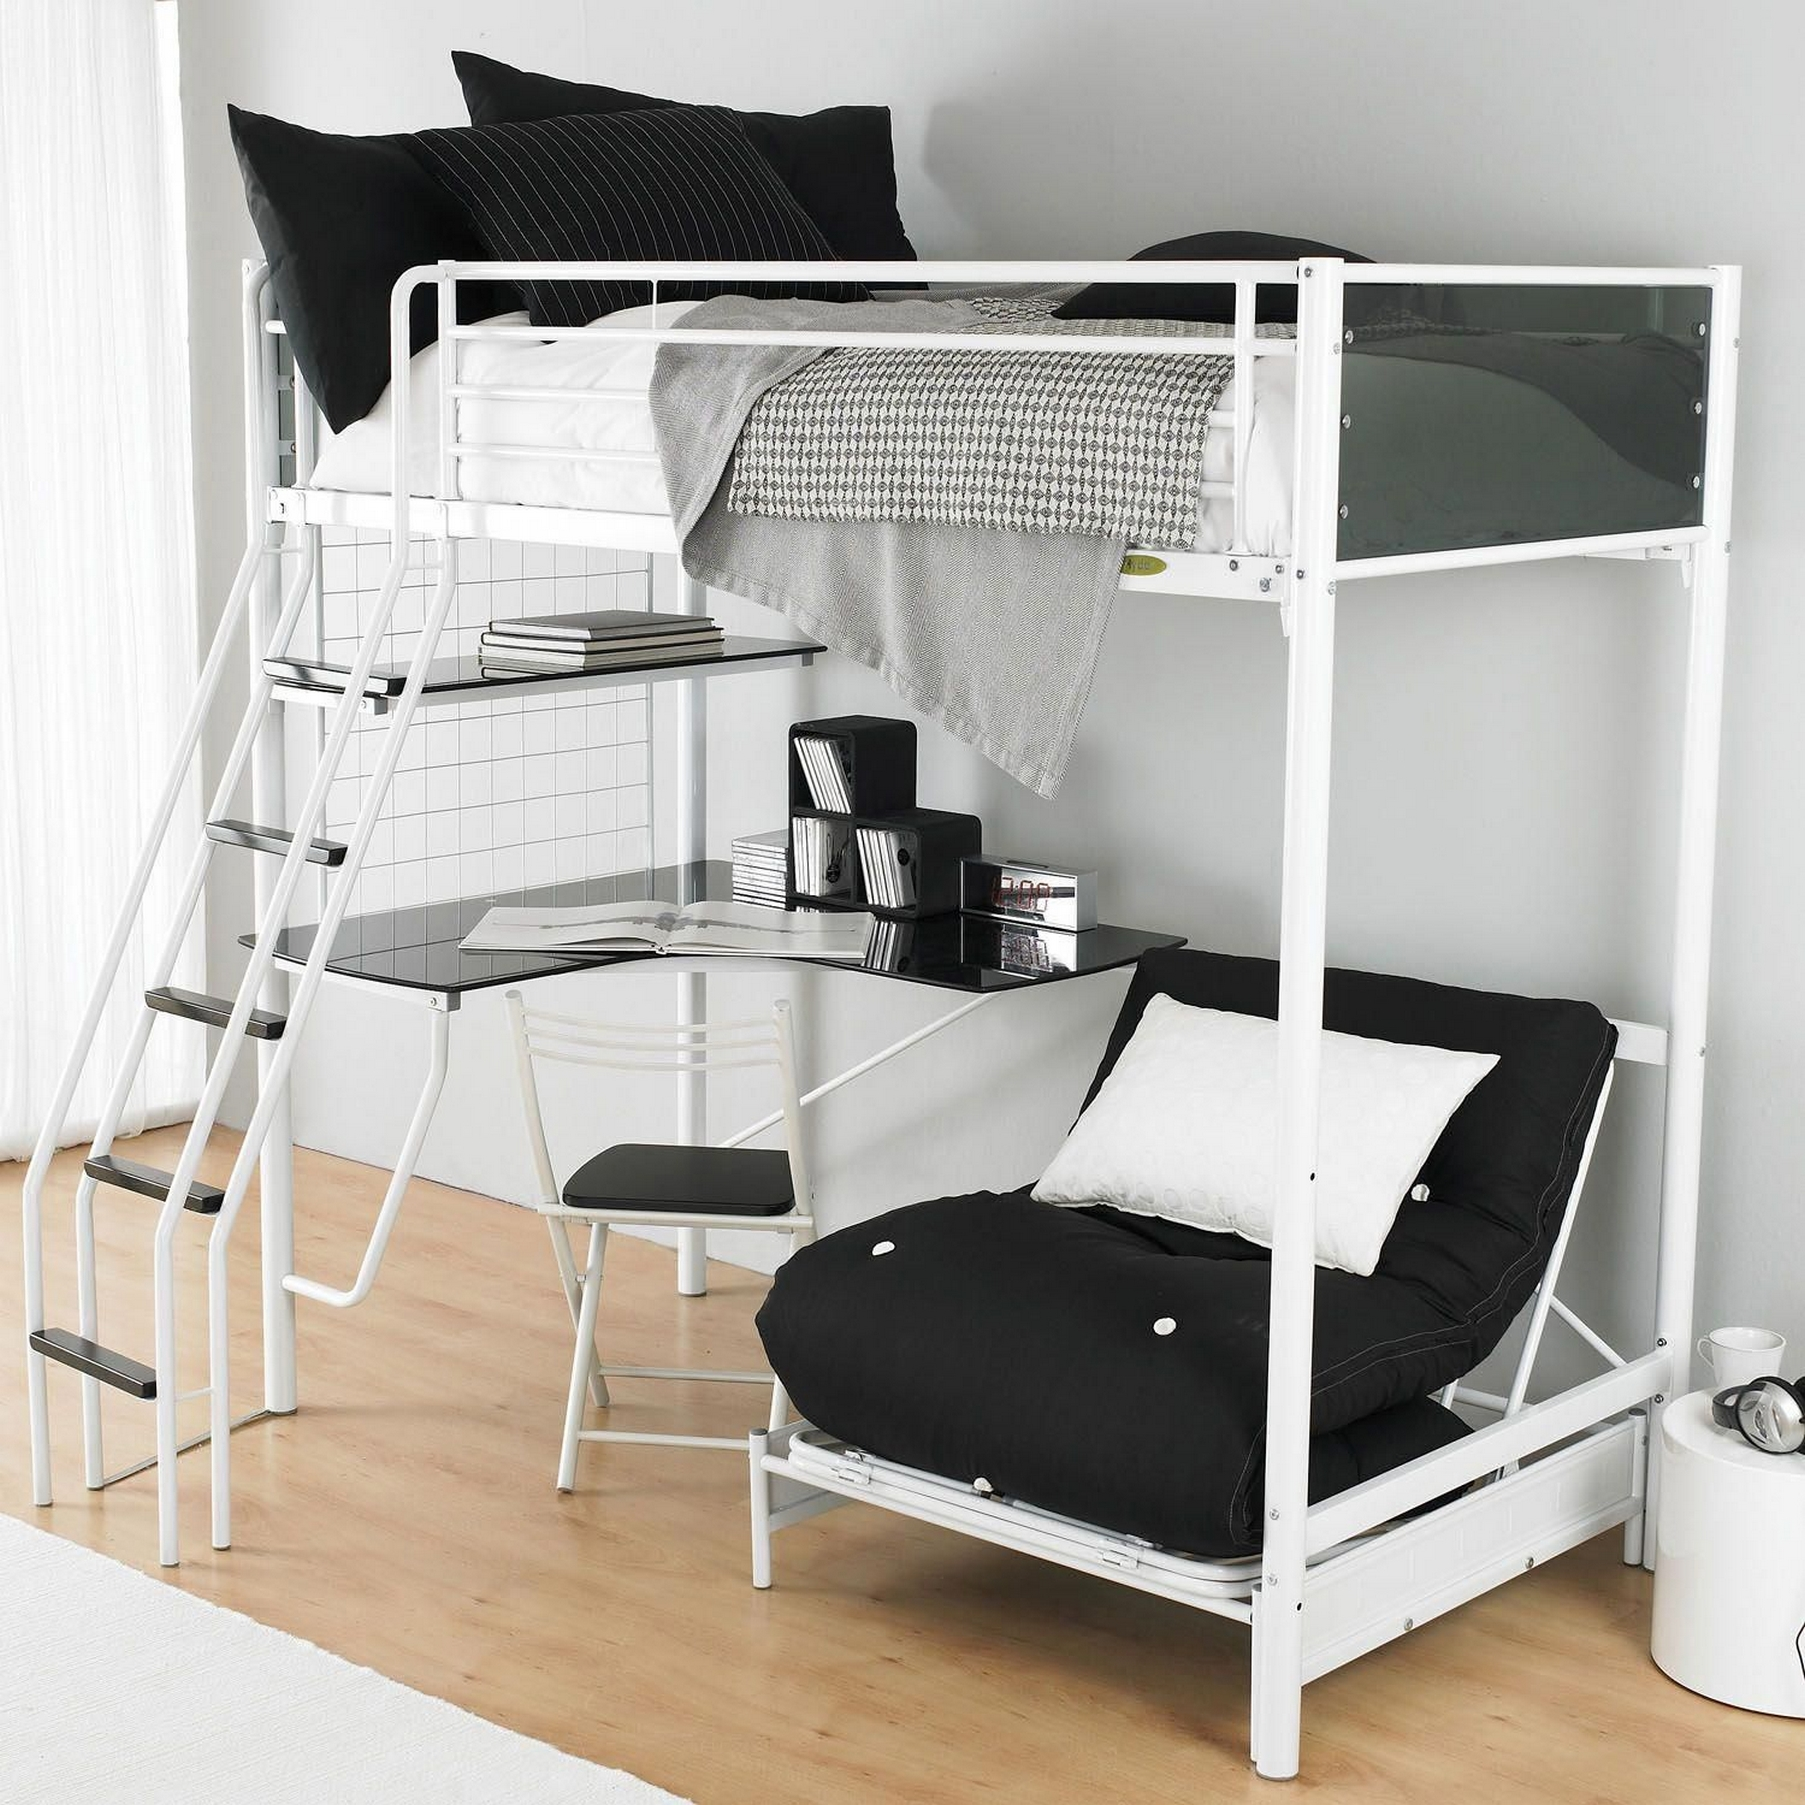 34 Bunk Bed Design Ideas With The Most Enthusiastic Desk In Interest 27